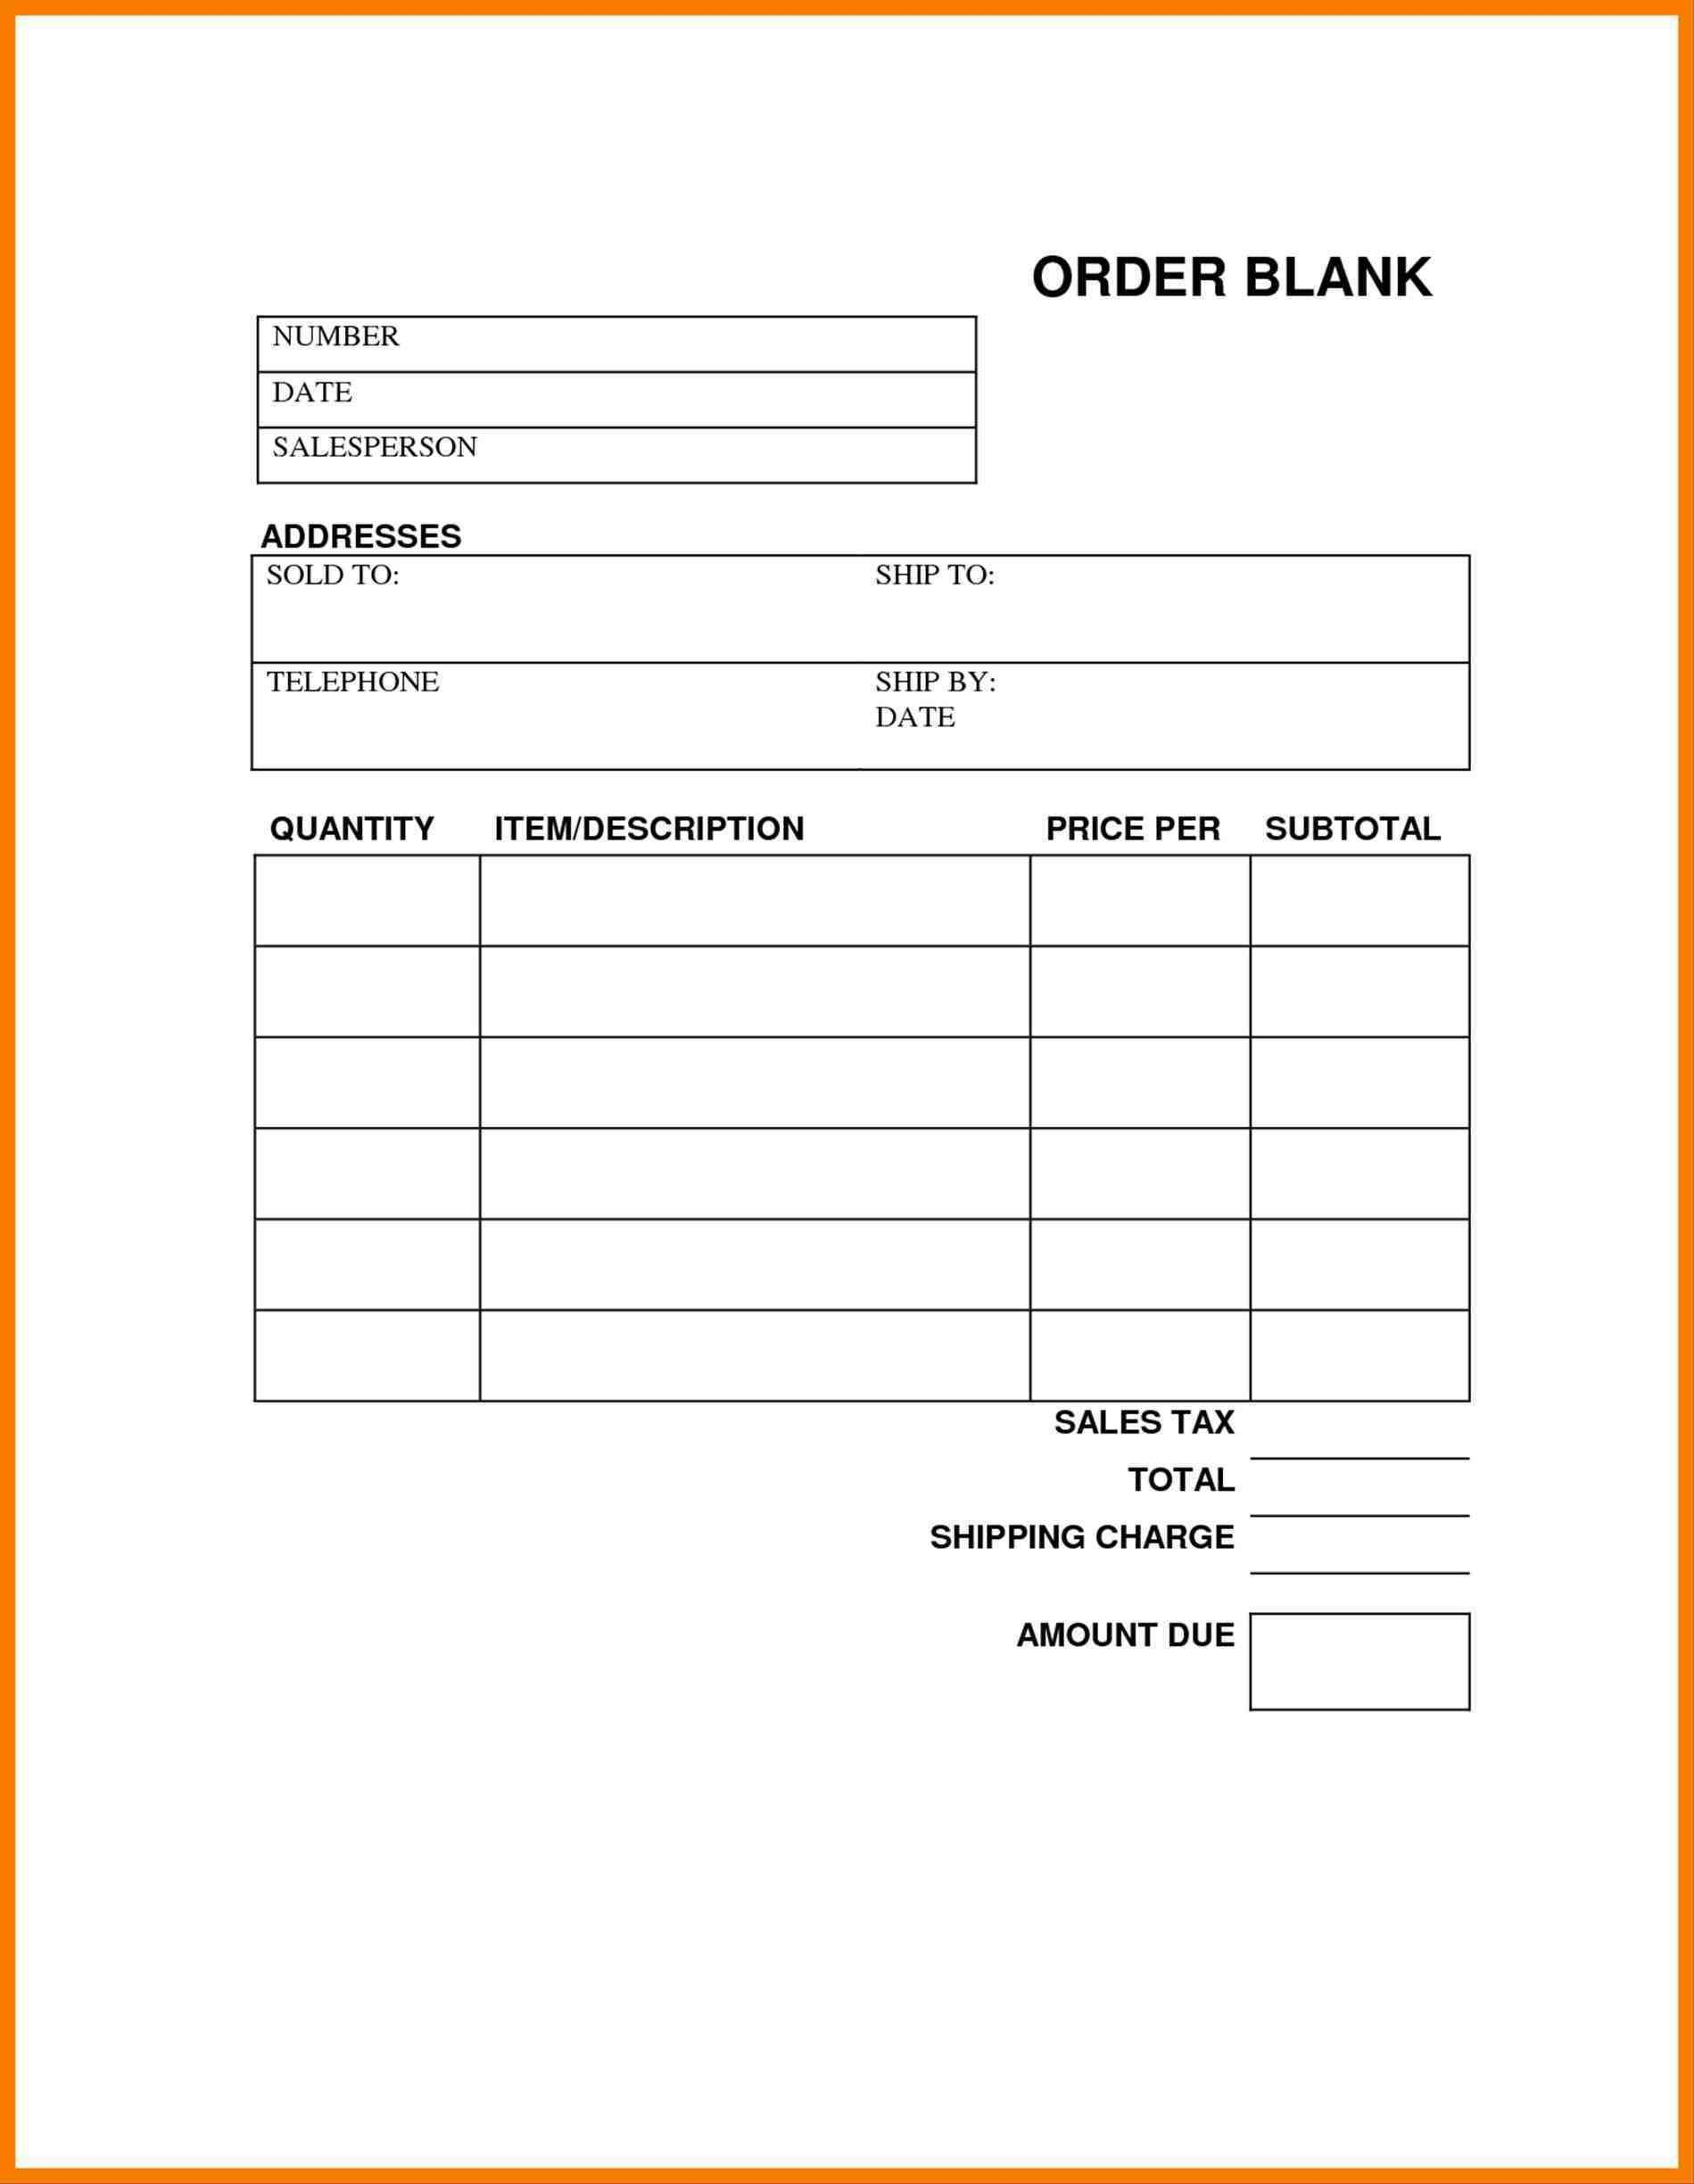 image regarding Free Printable Order Forms named Blank Buy Kinds Templates Totally free Free of charge Tamplate Buy